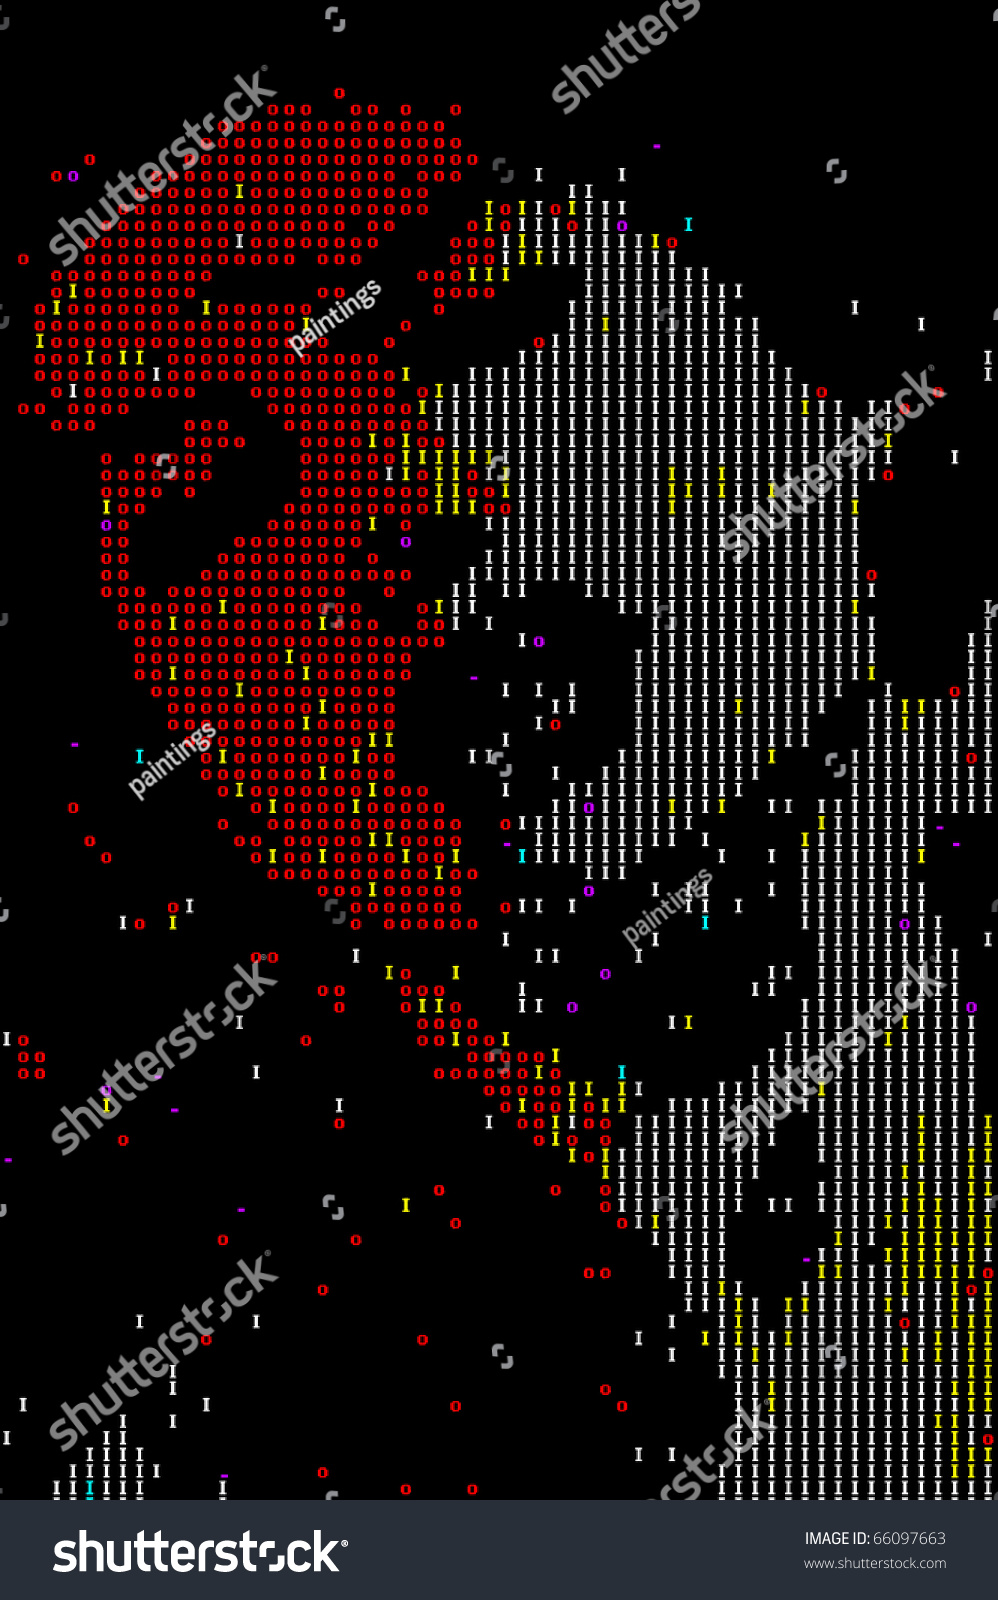 One Line Ascii Art Eyes : Nerdy computer ascci generated woman face stock vector